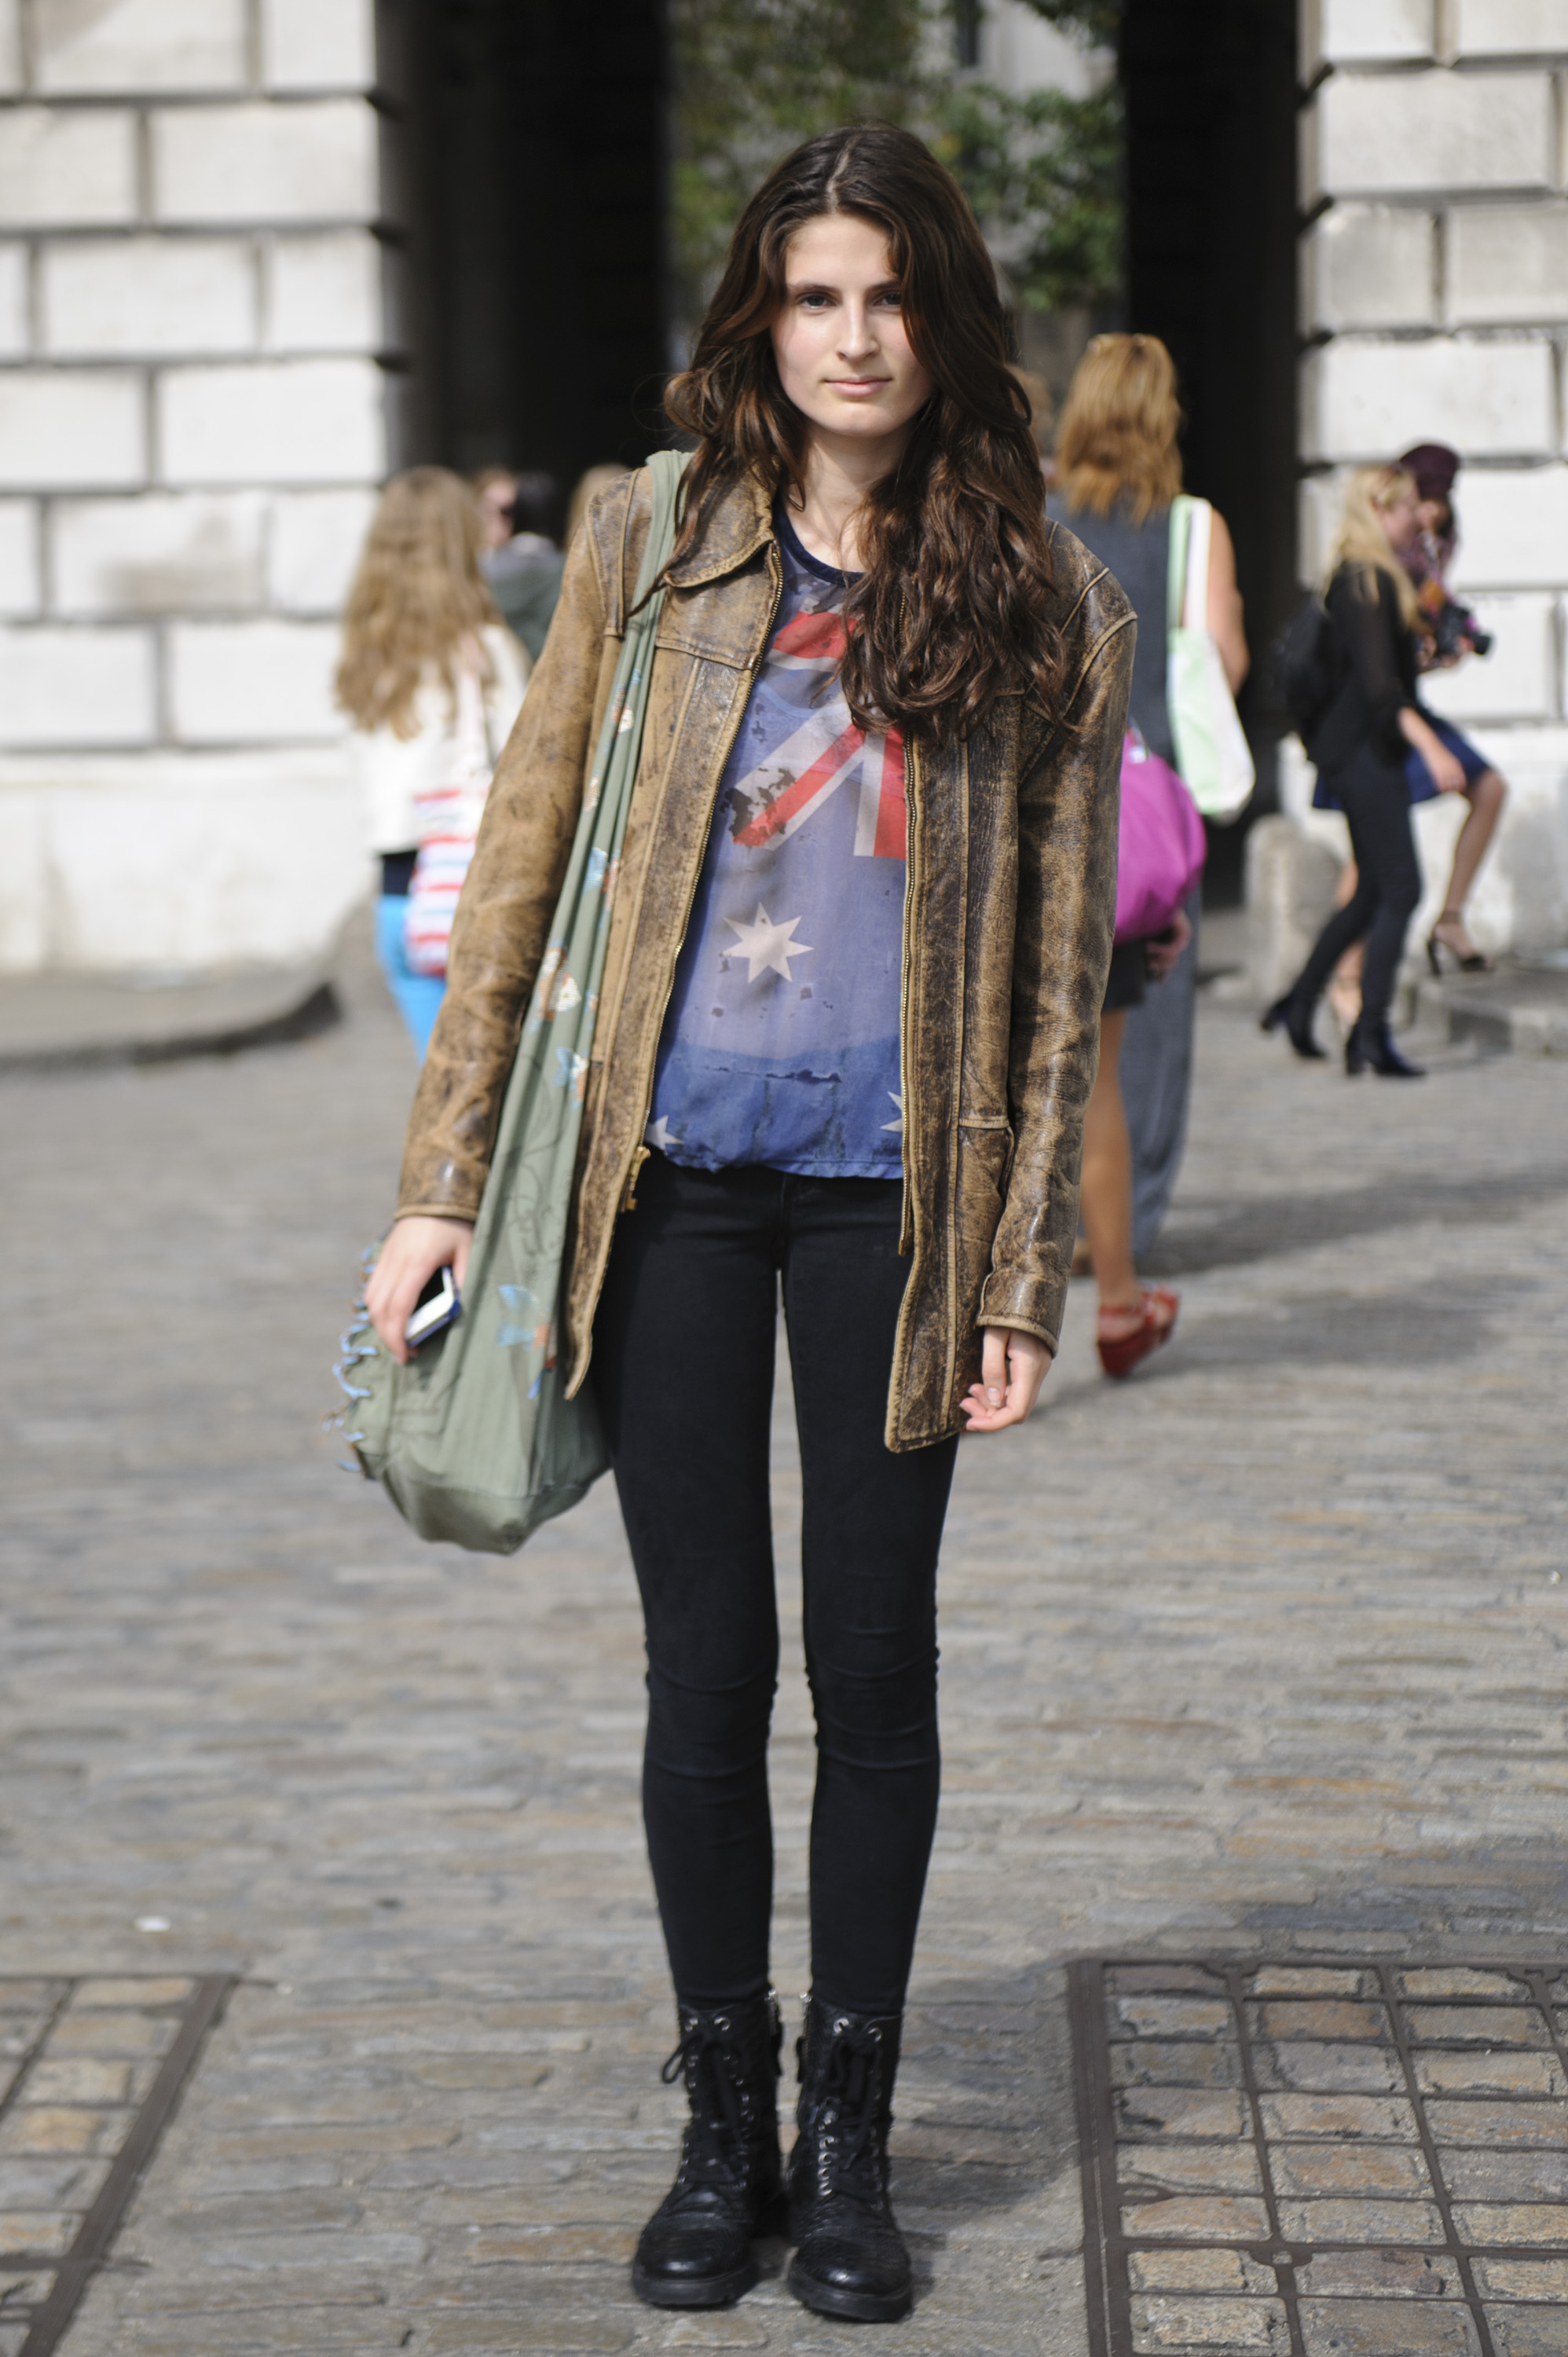 This outfit got the cool-girl treatment courtesy of her Rag & Bone trousers and Zadig & Voltaire lace-up boots.